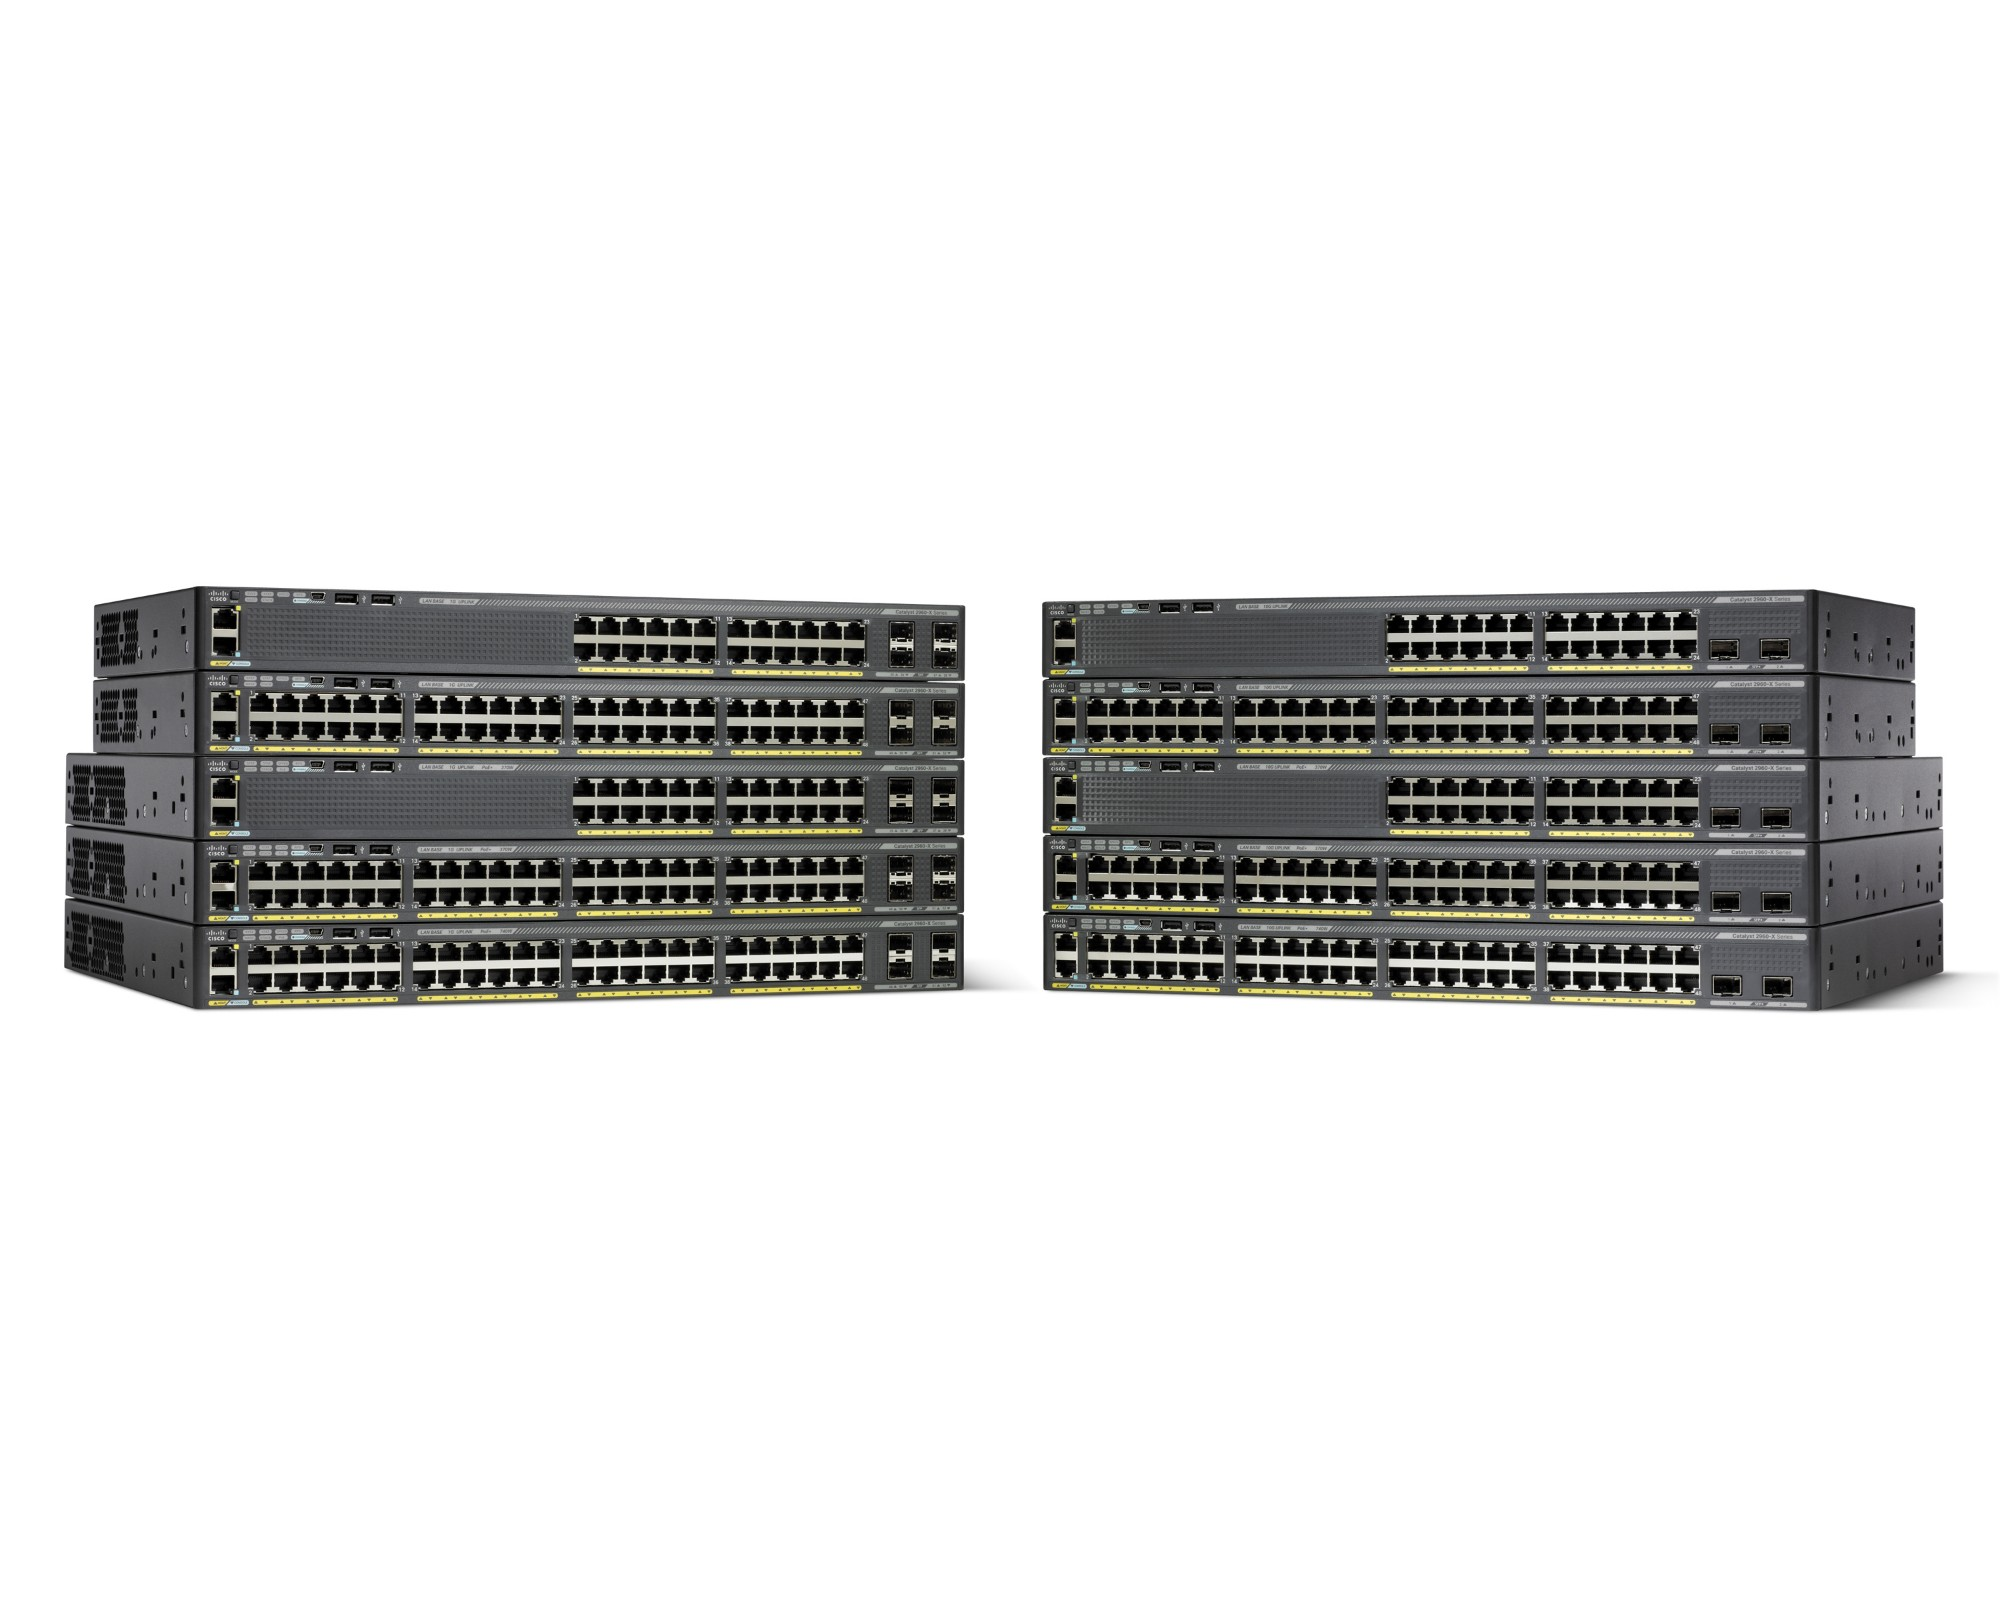 Cisco Catalyst WS-C2960X-48LPD-L network switch Managed L2 Gigabit Ethernet (10/100/1000) Black Power over Ethernet (PoE)